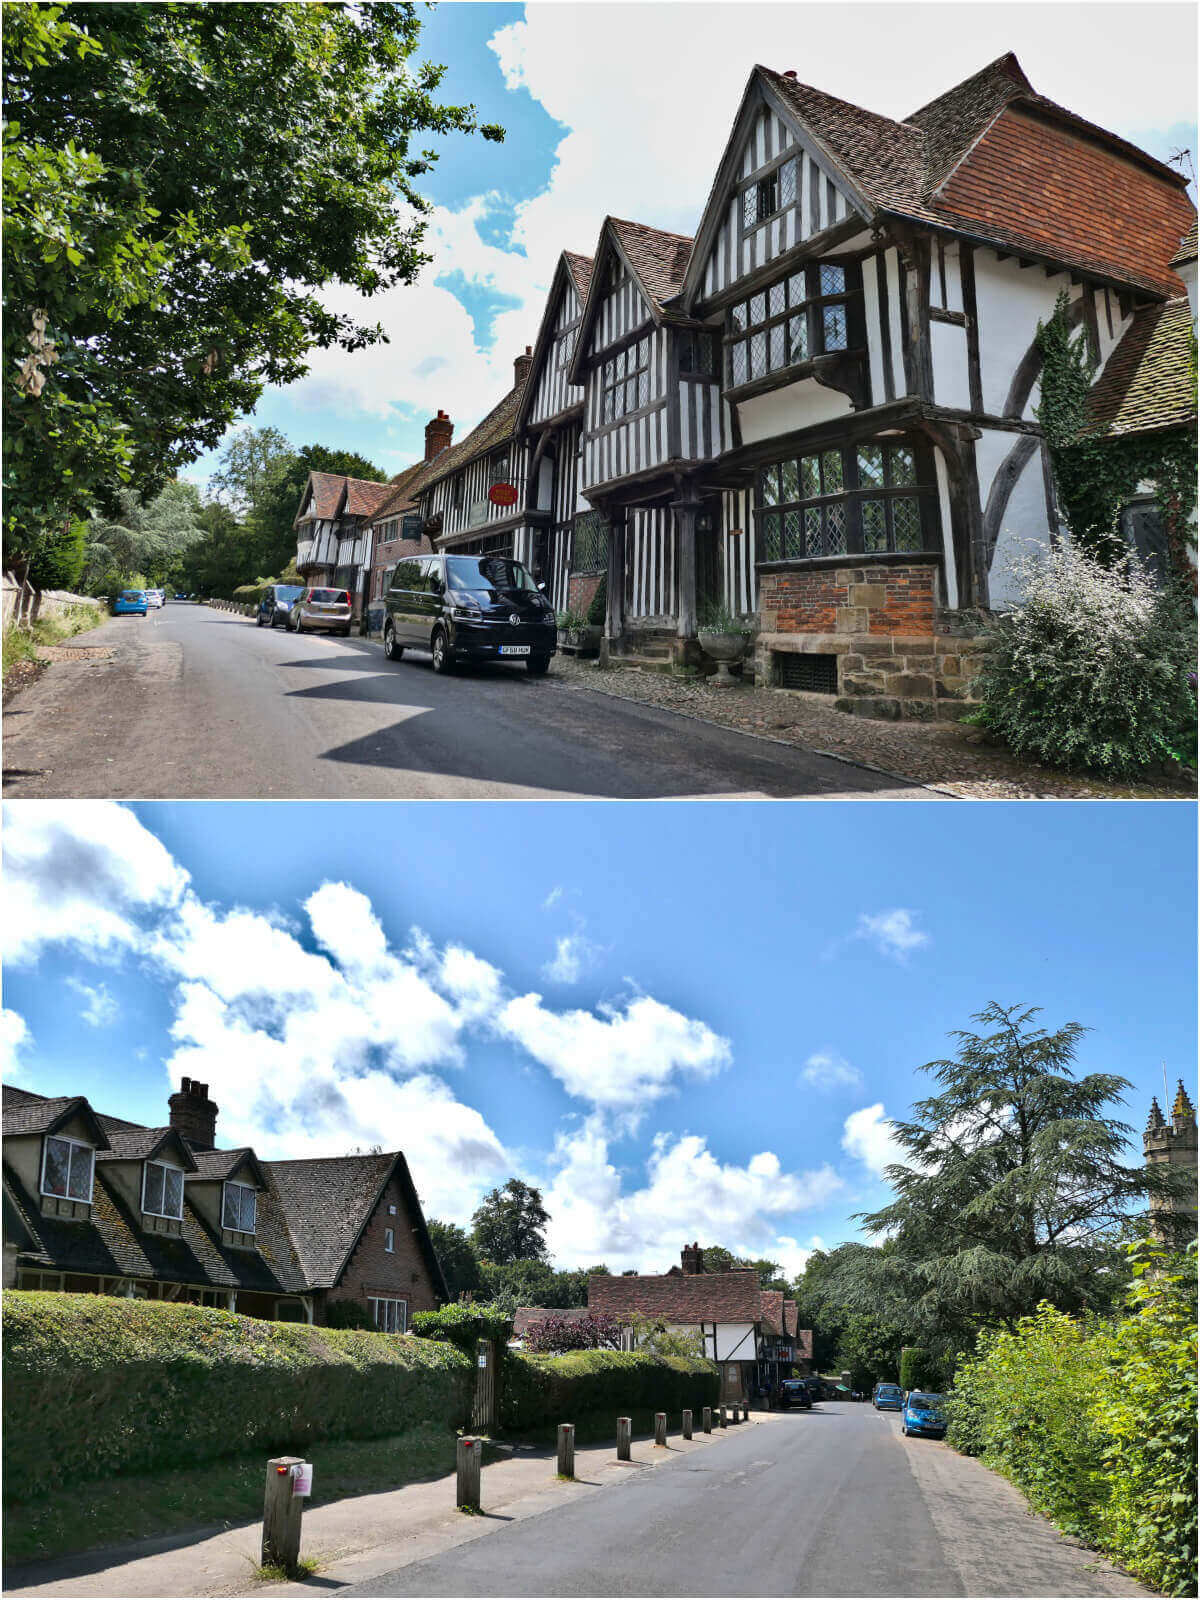 Chiddingstone Village